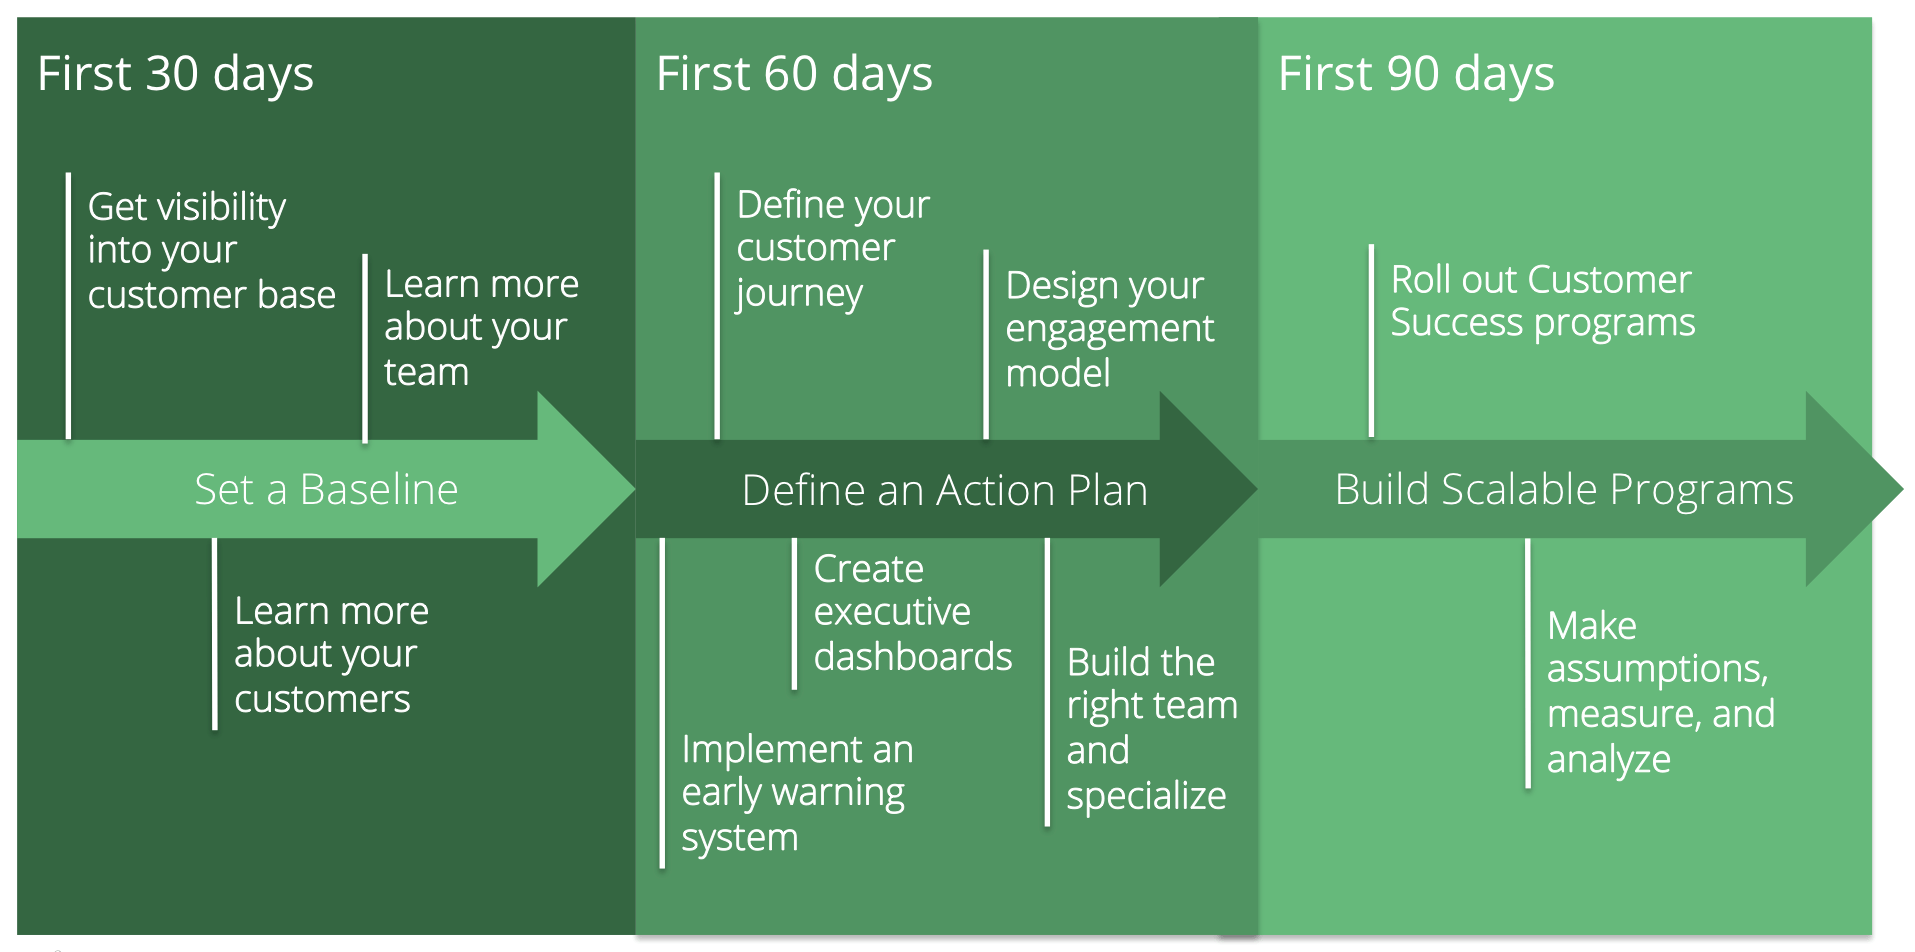 Your 90 Day Customer Success Plan